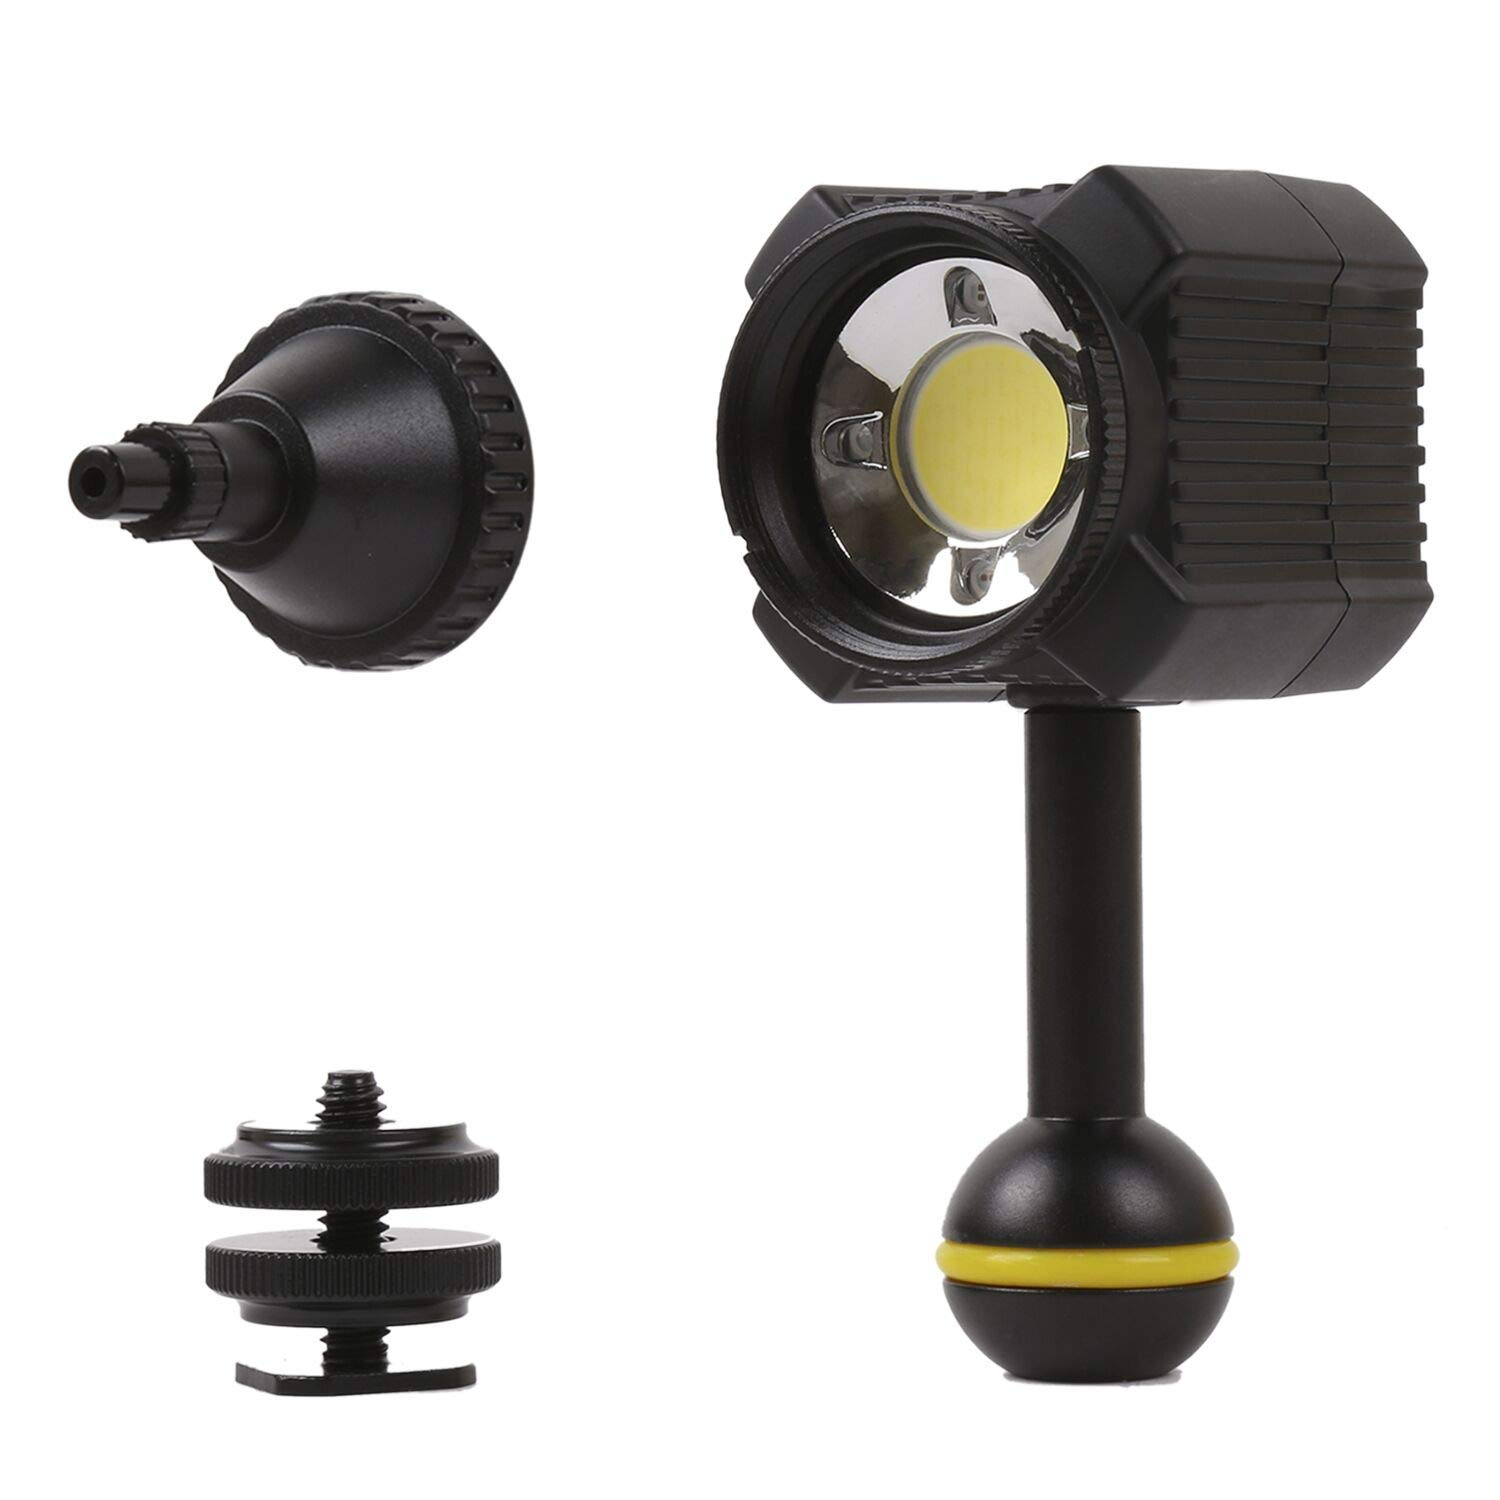 Orsda Diving Light High Power Mini Waterproof led Light Scuba Diving Lights Fill-in Light for Waterproof housing Underwater Photographic Lighting System by Orsda